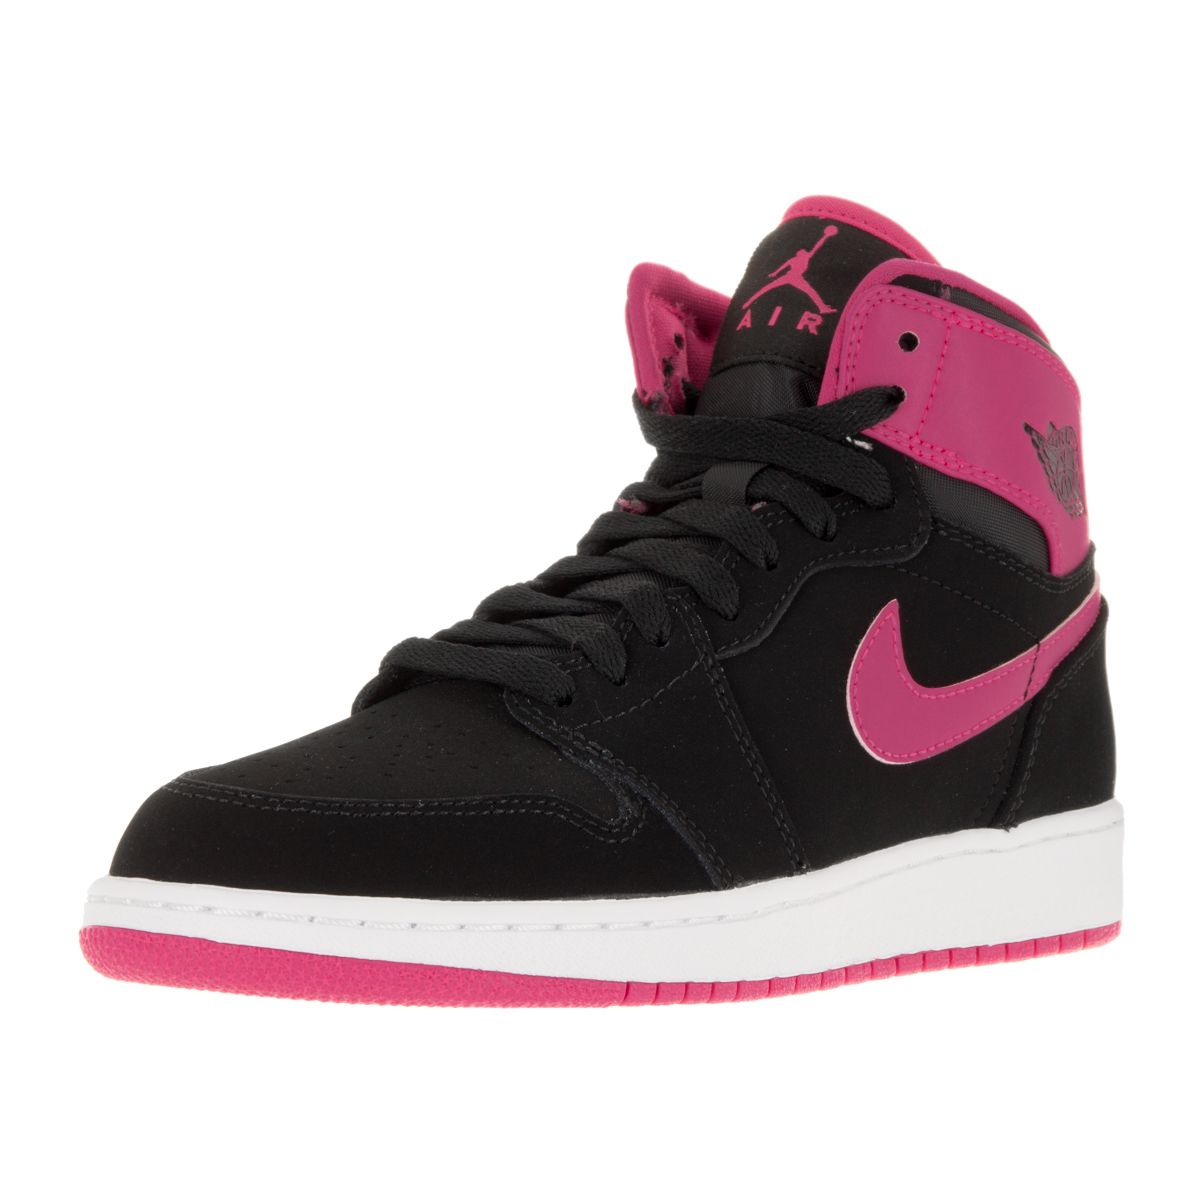 Nike Jordan Kid\u0027s Air Jordan 1 Retro High Gg /Vivid Pink/White/Vvd. Pink  Basketball ShoesJordan ...